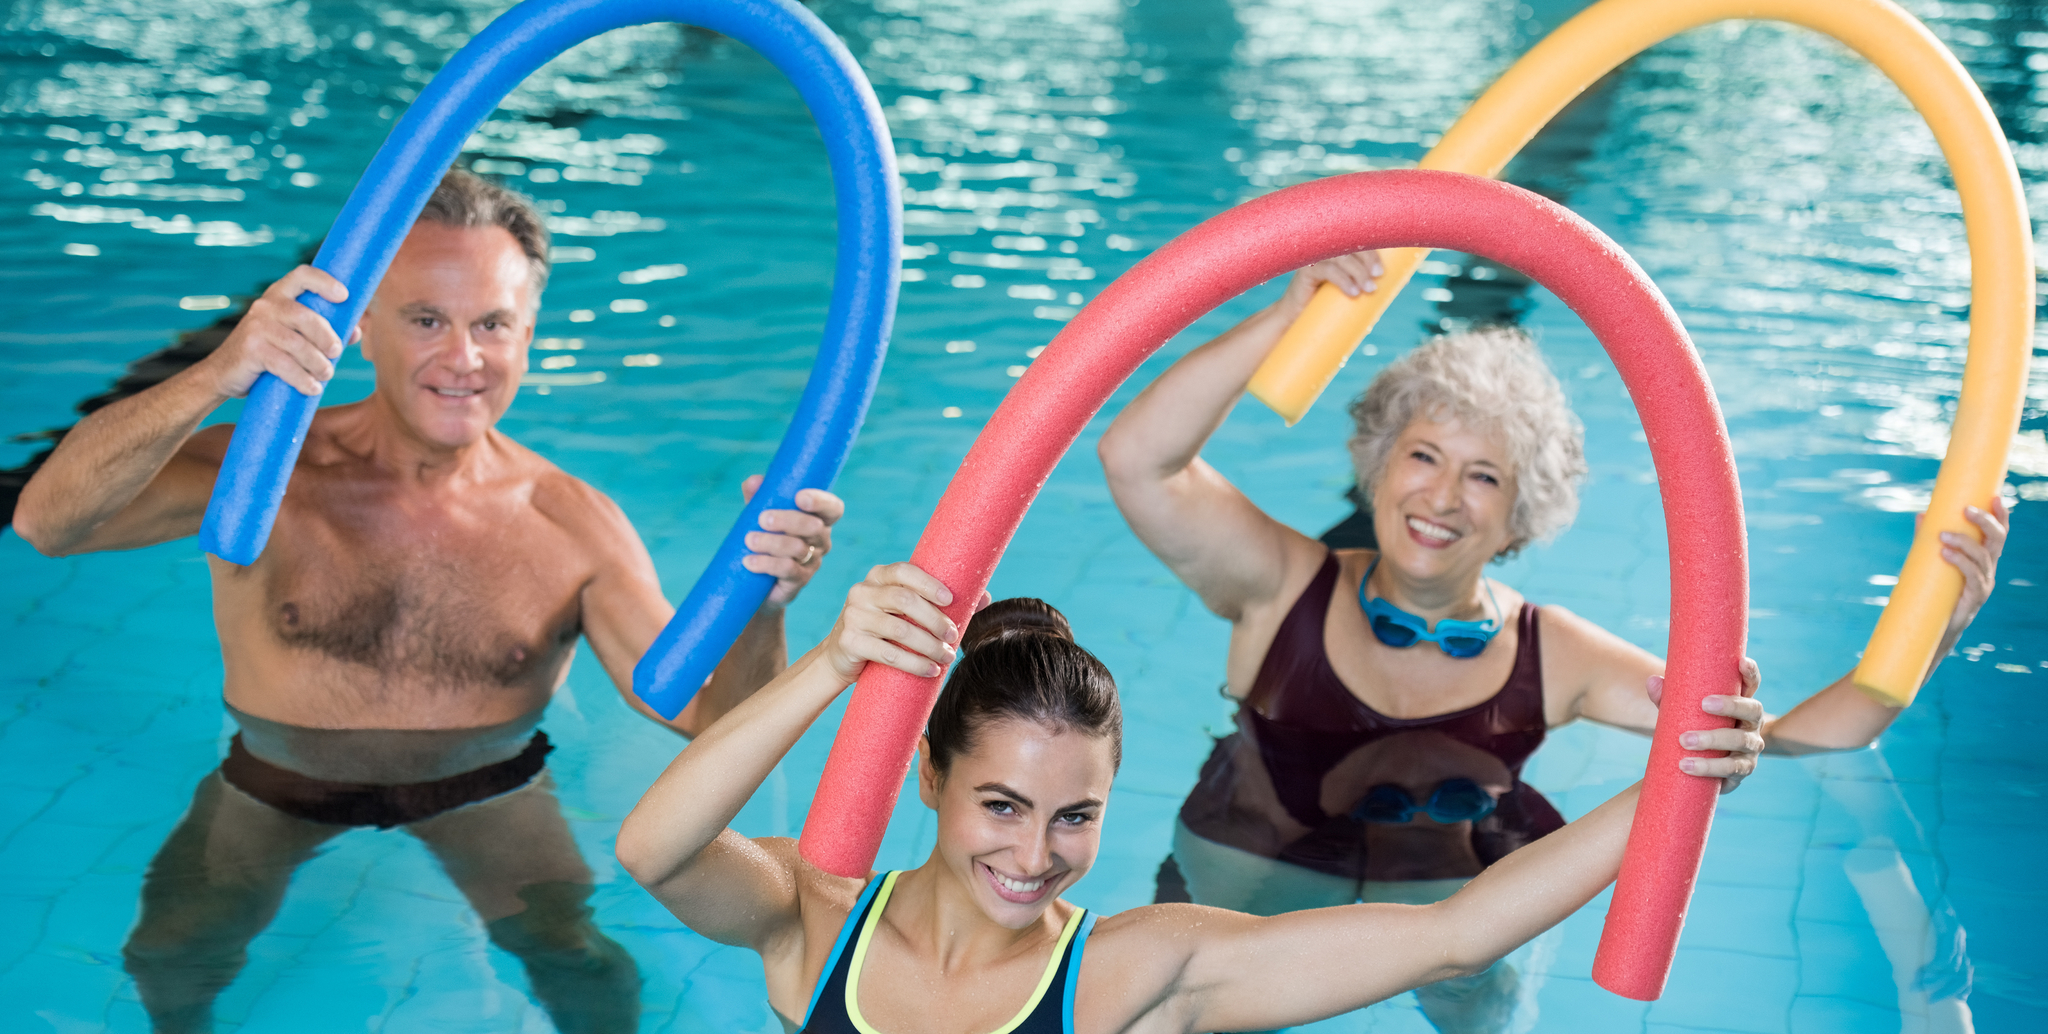 senior man, senior woman, and younger woman smiling while stretching with pool noodles during a water workout